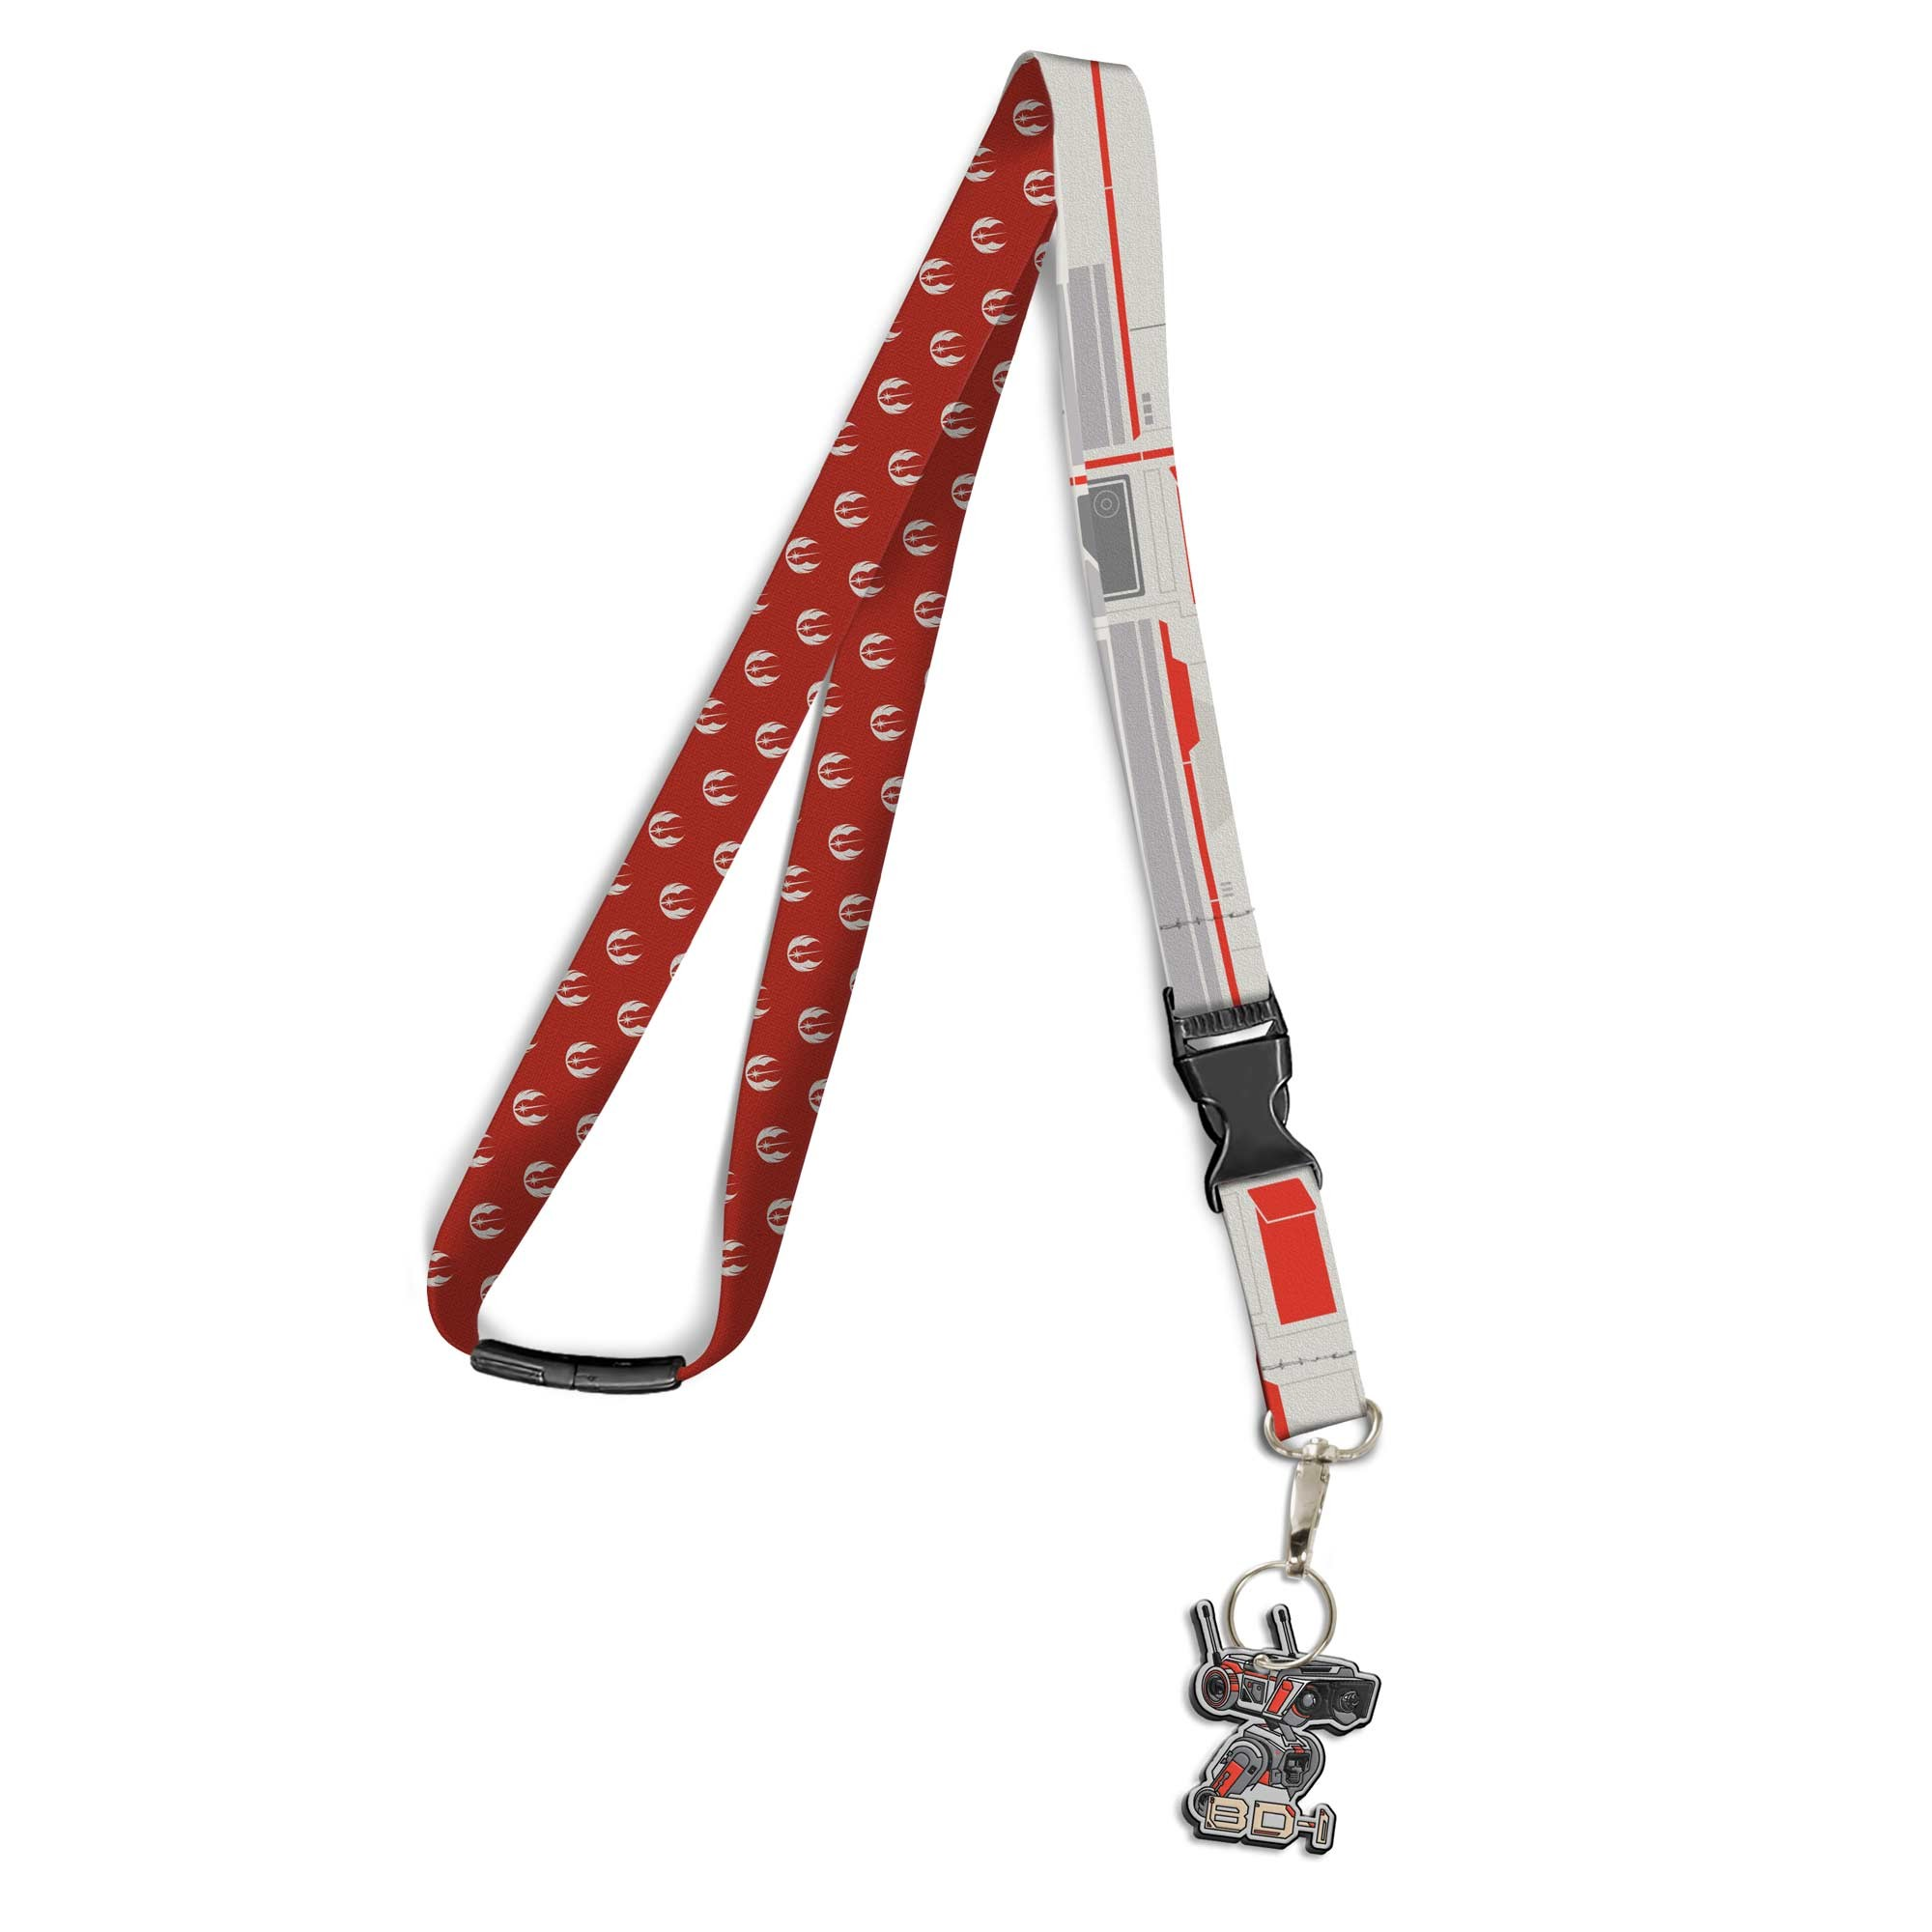 Star Wars Lanyard and Charm with a Jedi Fallen Order BD-1 Design, Image 1